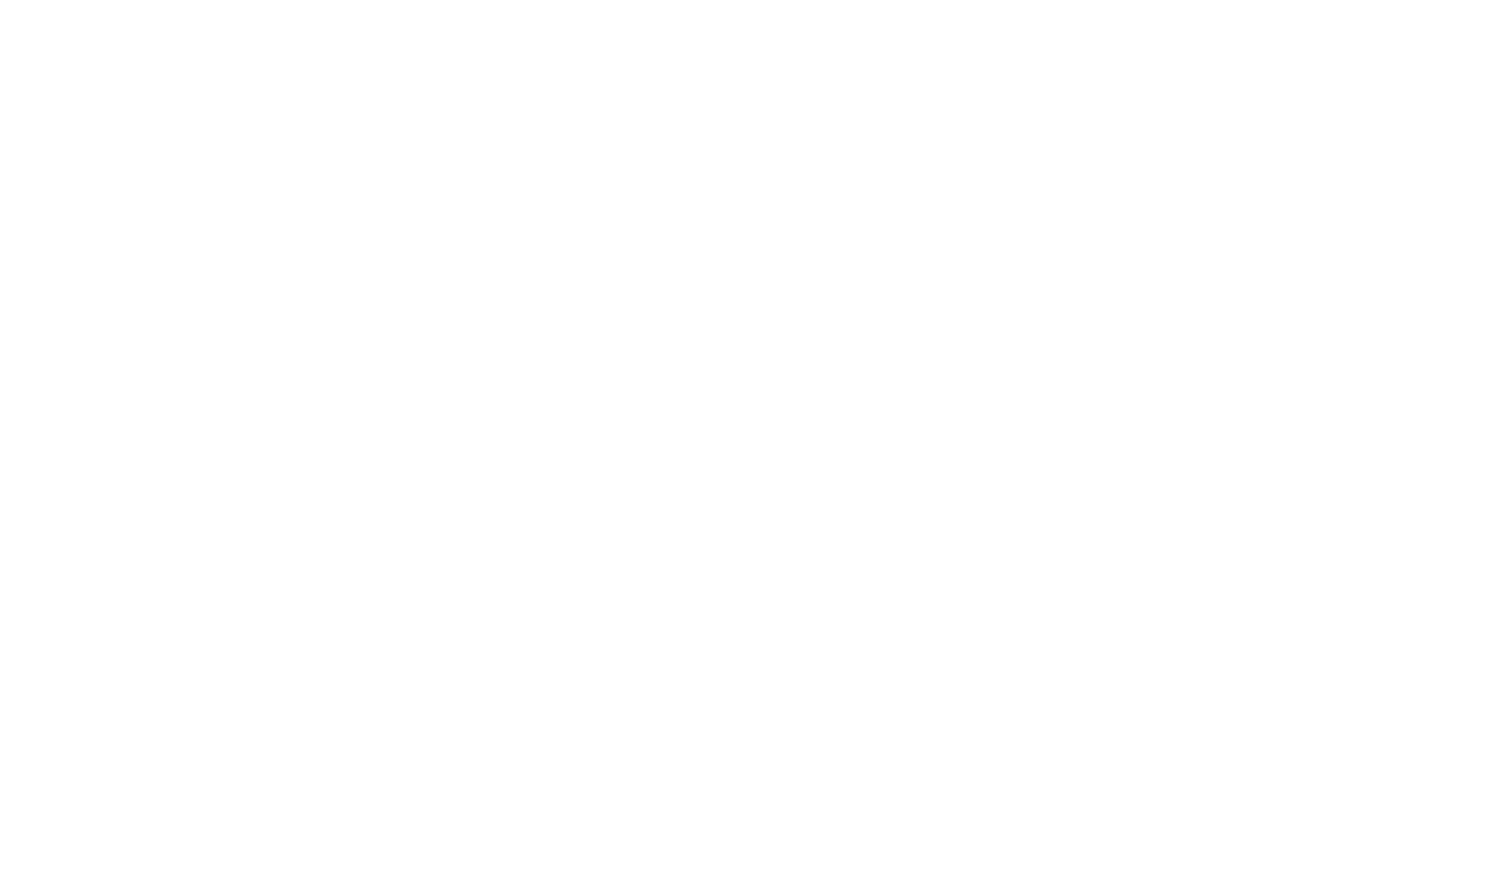 Survivor Customs | Dirt Track & Custom Motorcycles